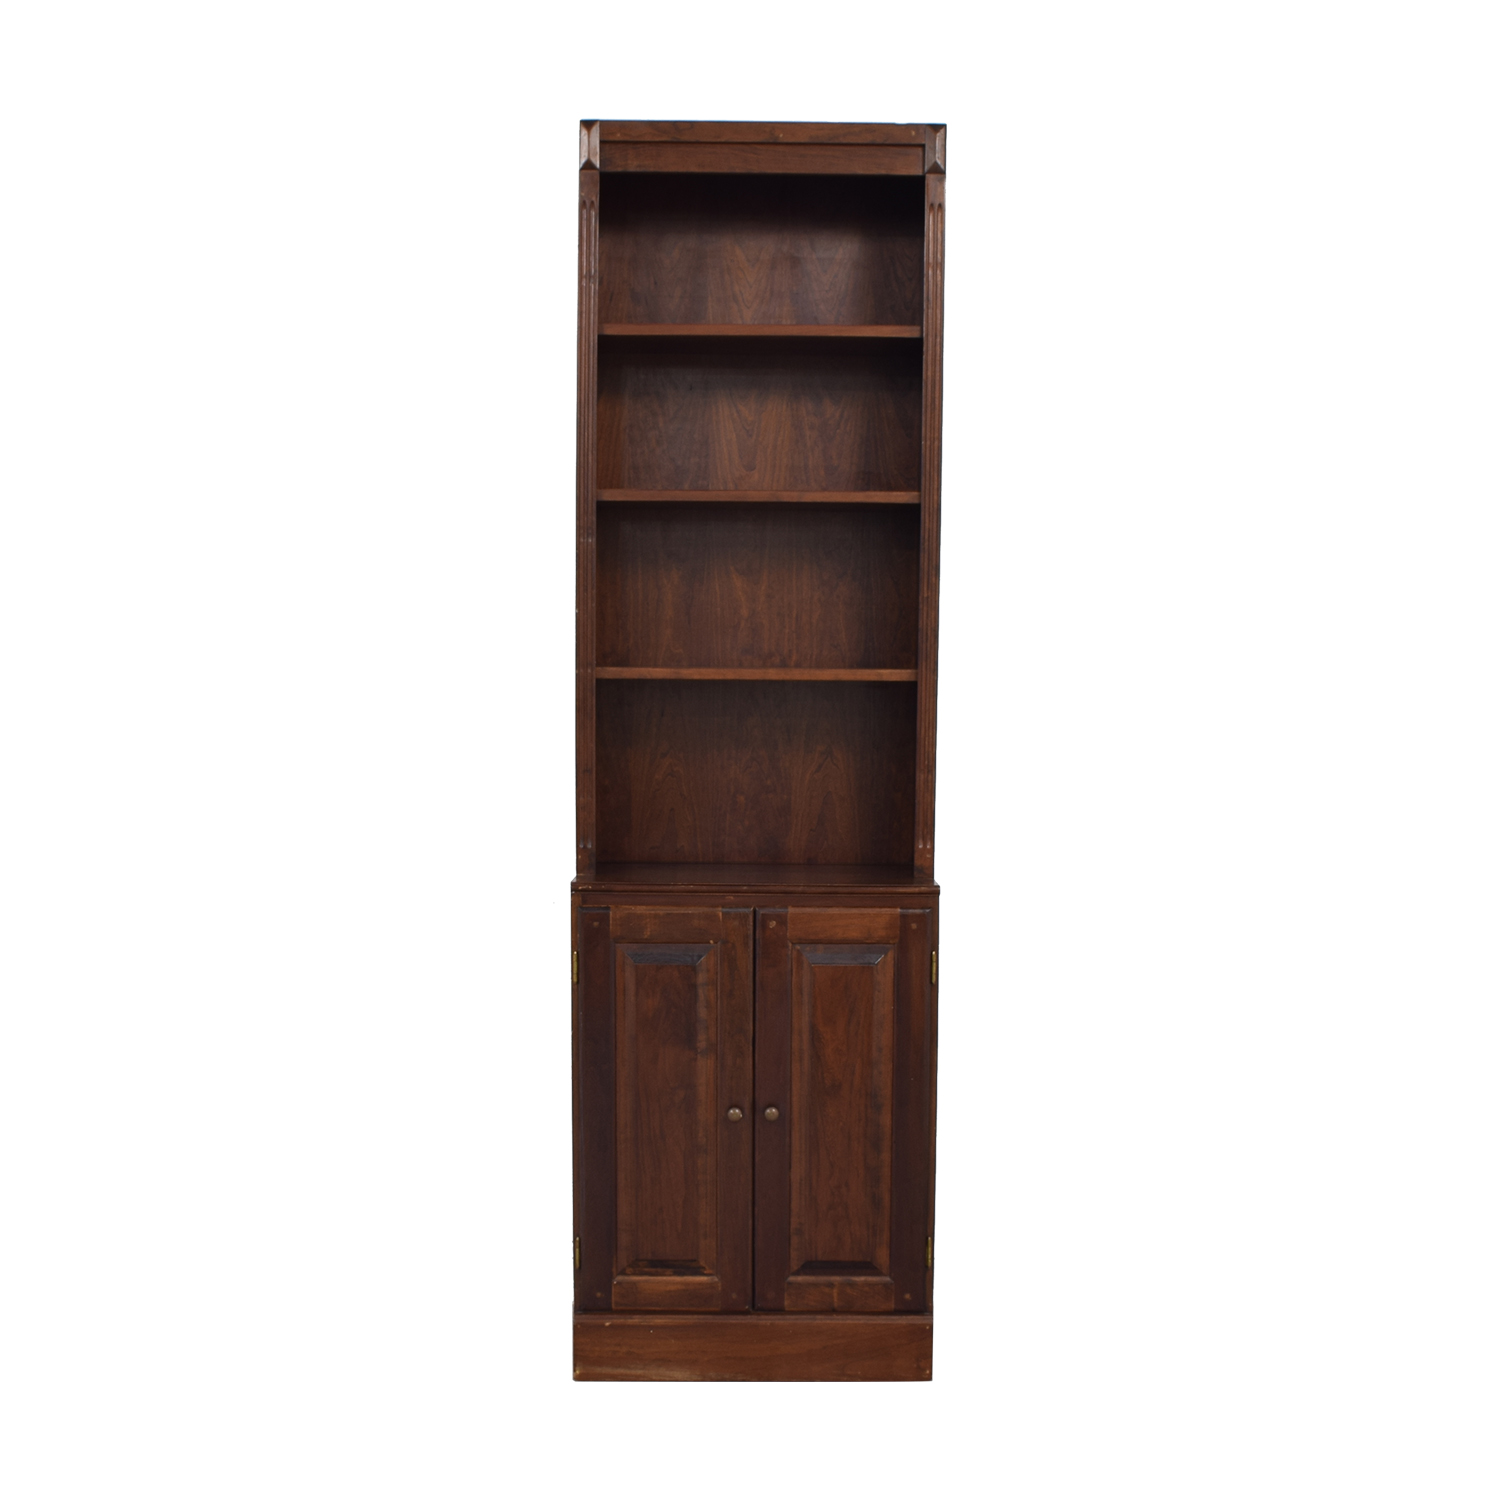 Vintage Bookshelf with Cabinet ma